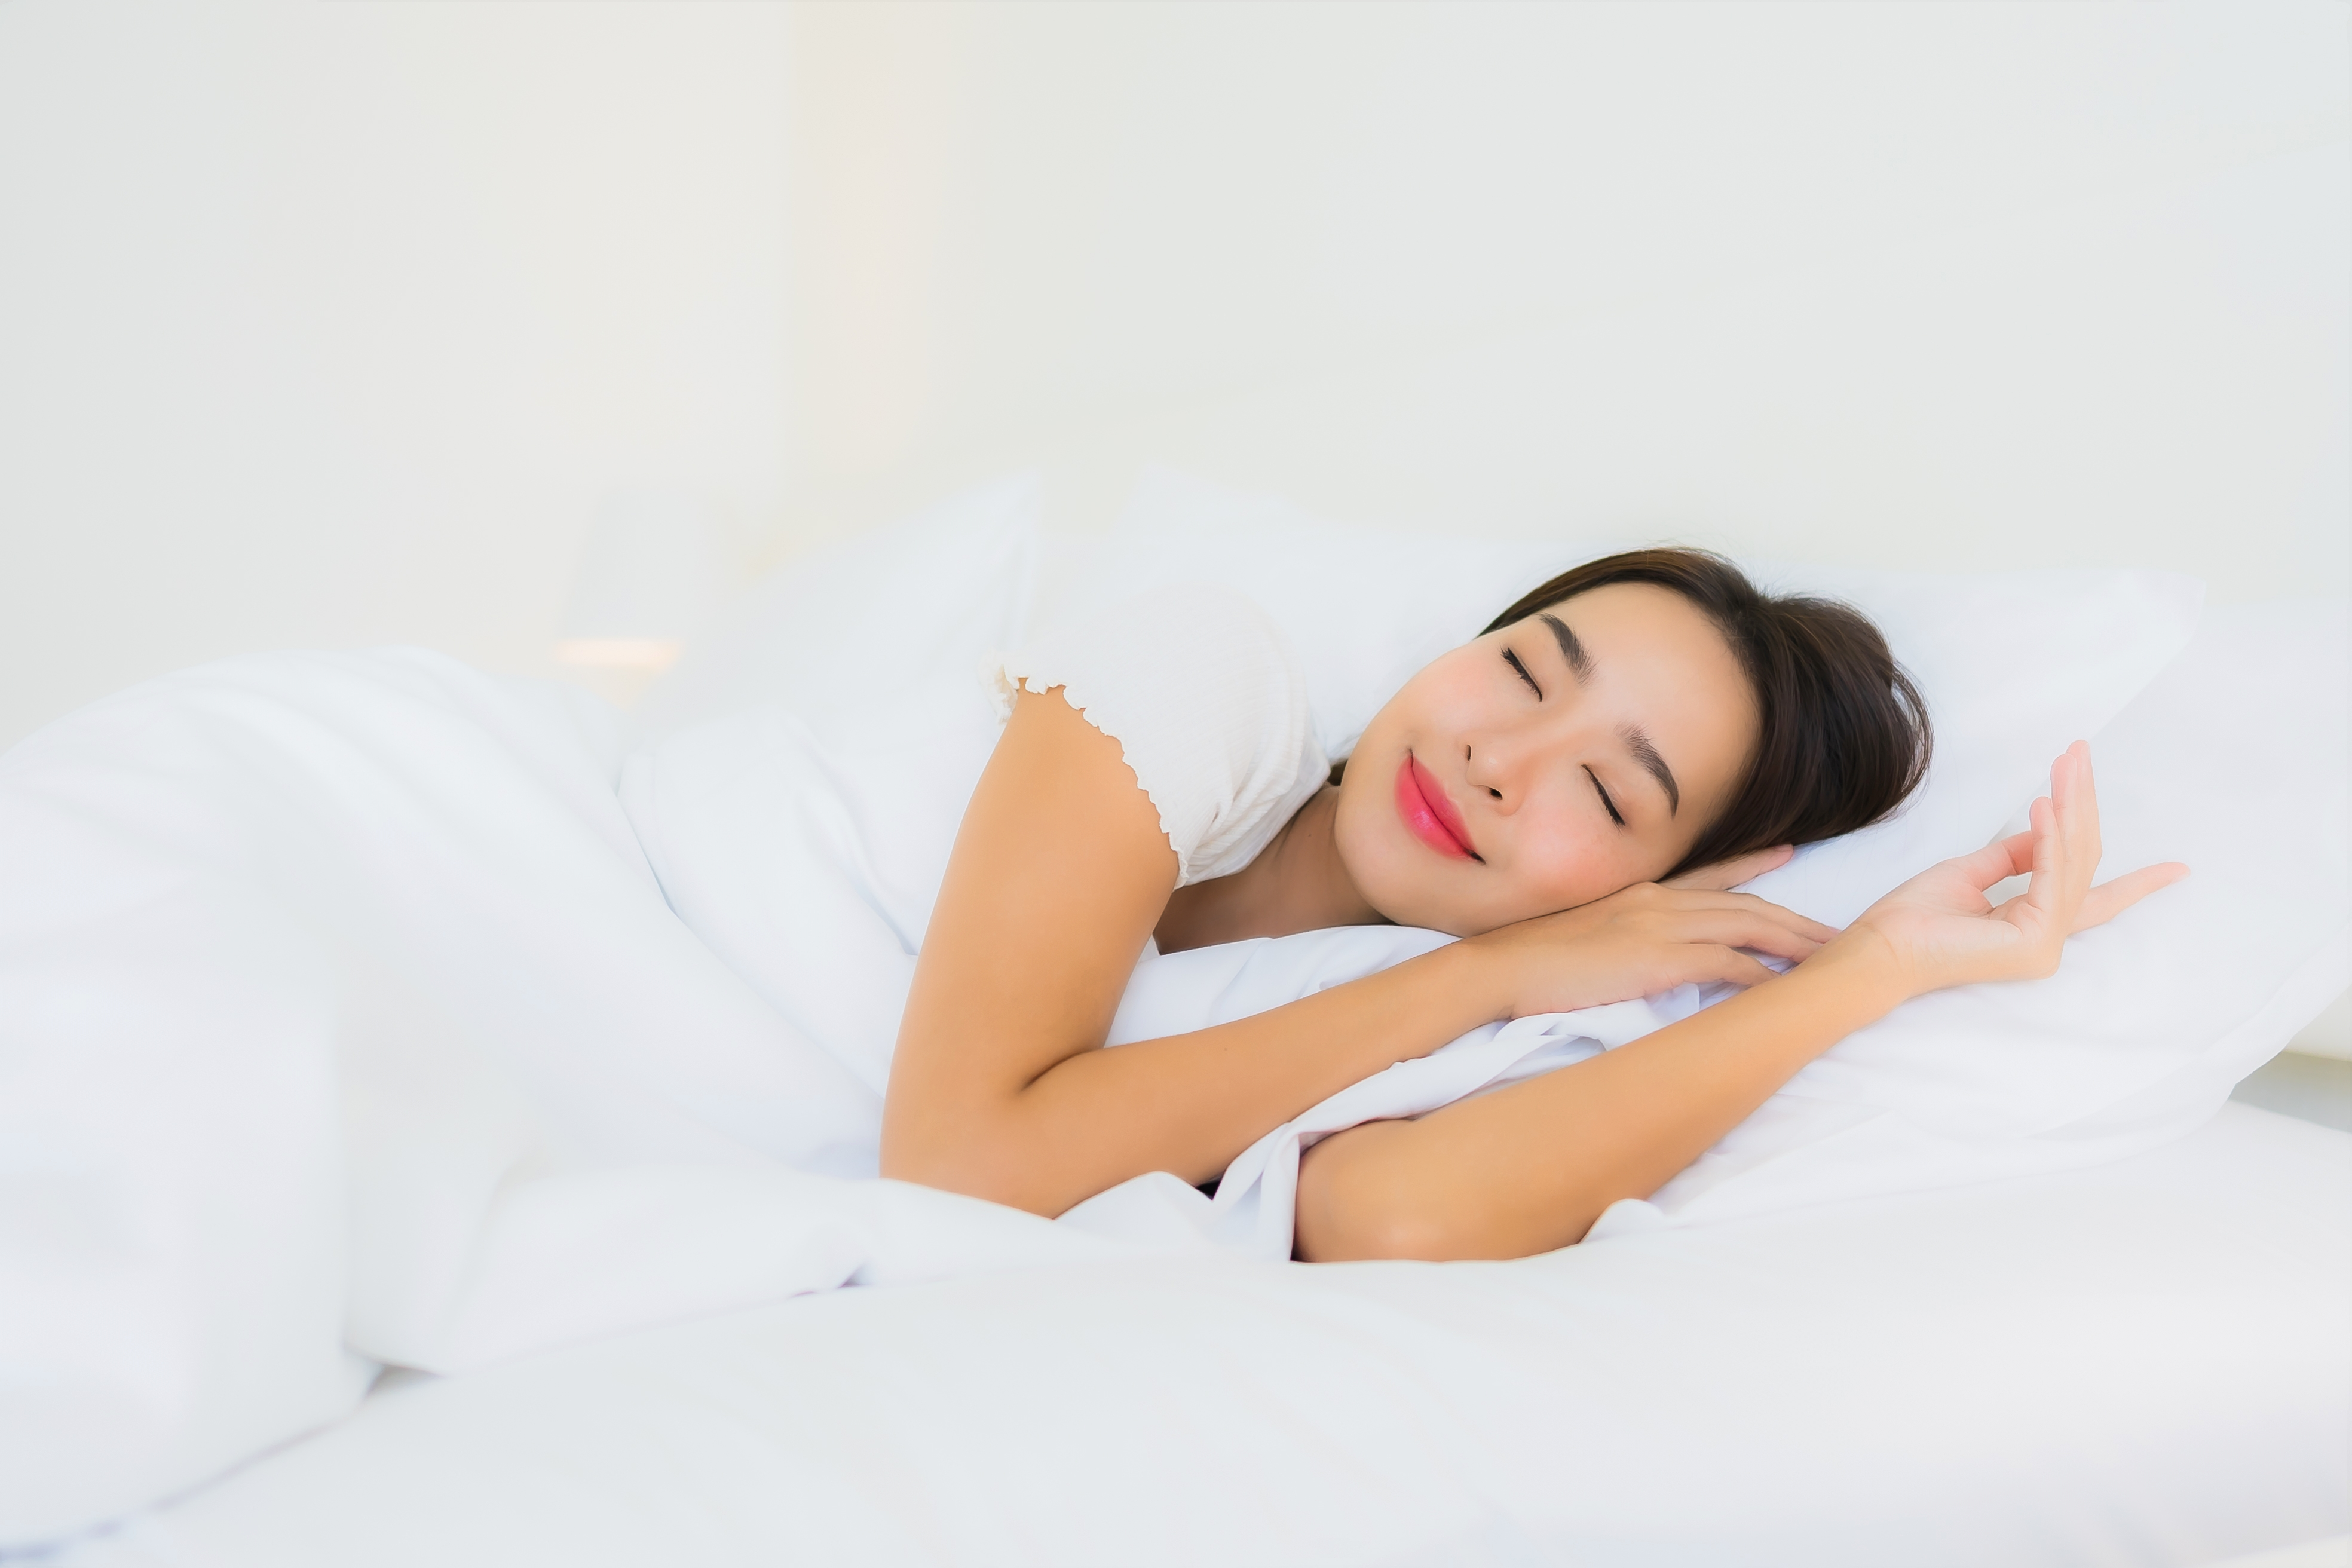 portrait-beautiful-young-asian-woman-relax-happy-smile-bed-with-white-pillow-blanket